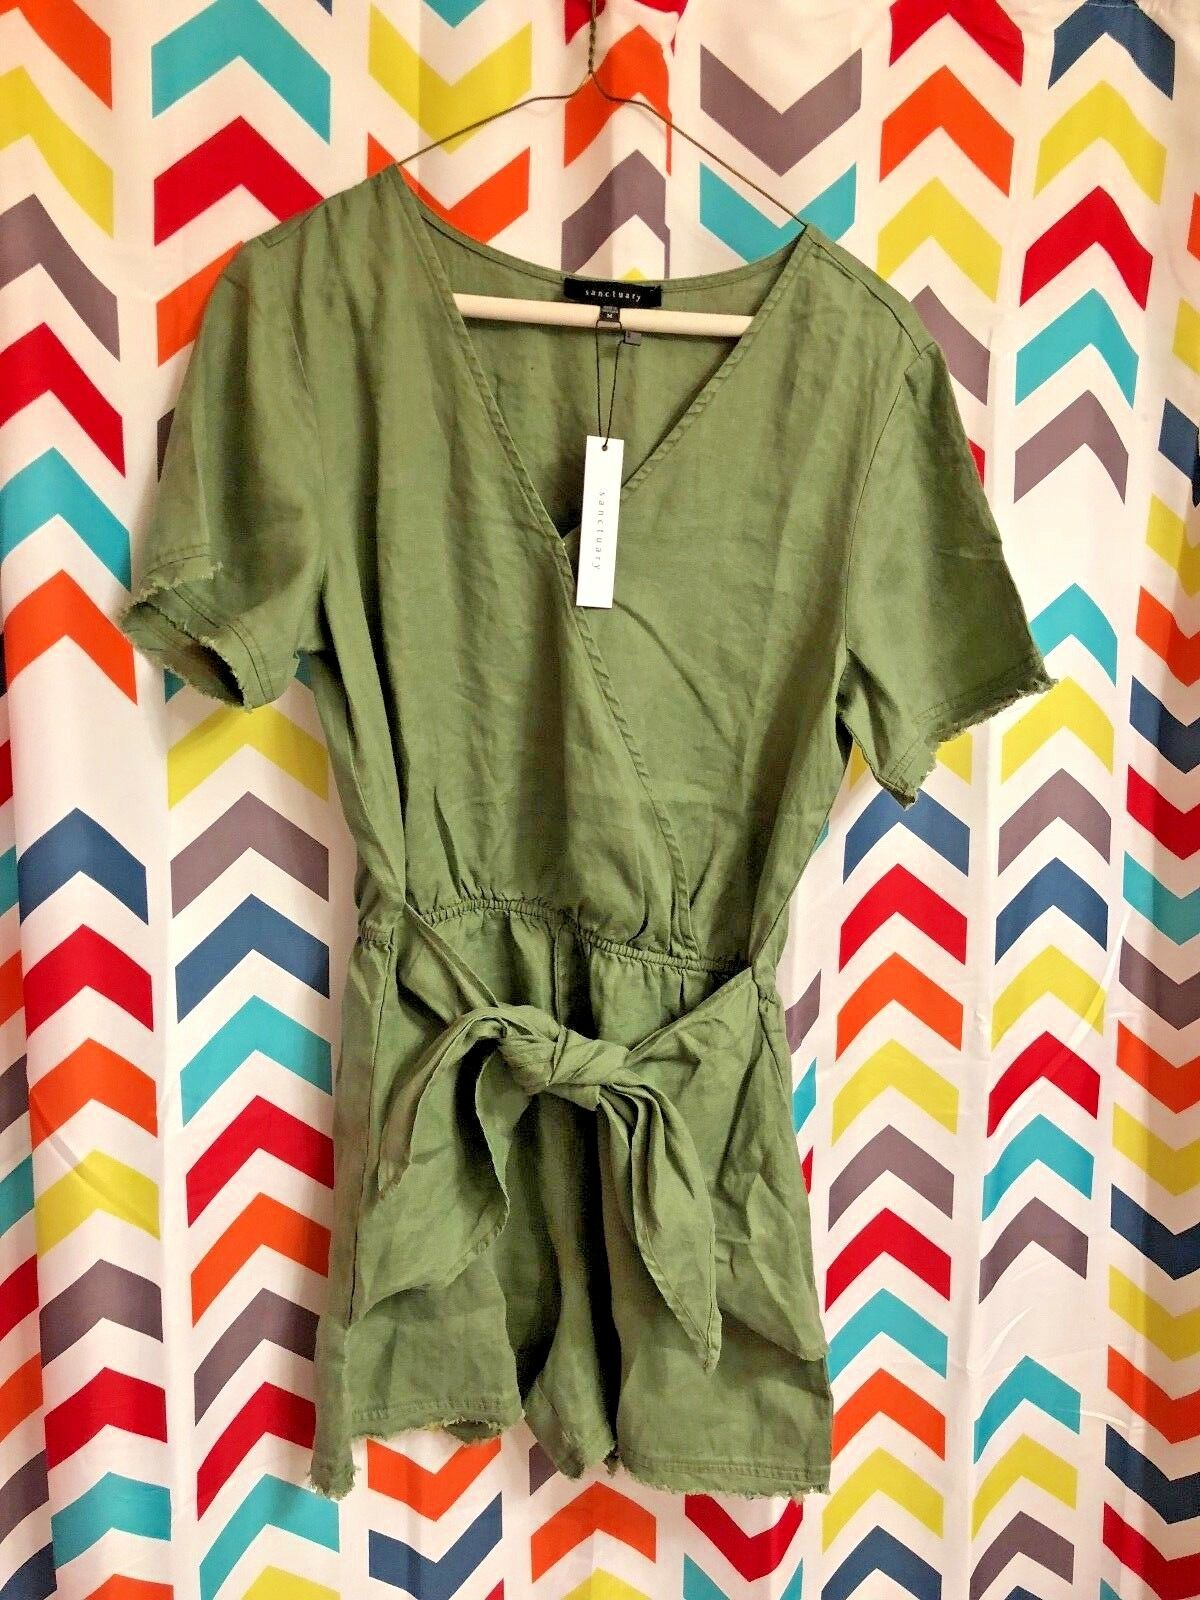 SANCTUARY New with Tags Date Palm Romper Cadet Army Green Medium M